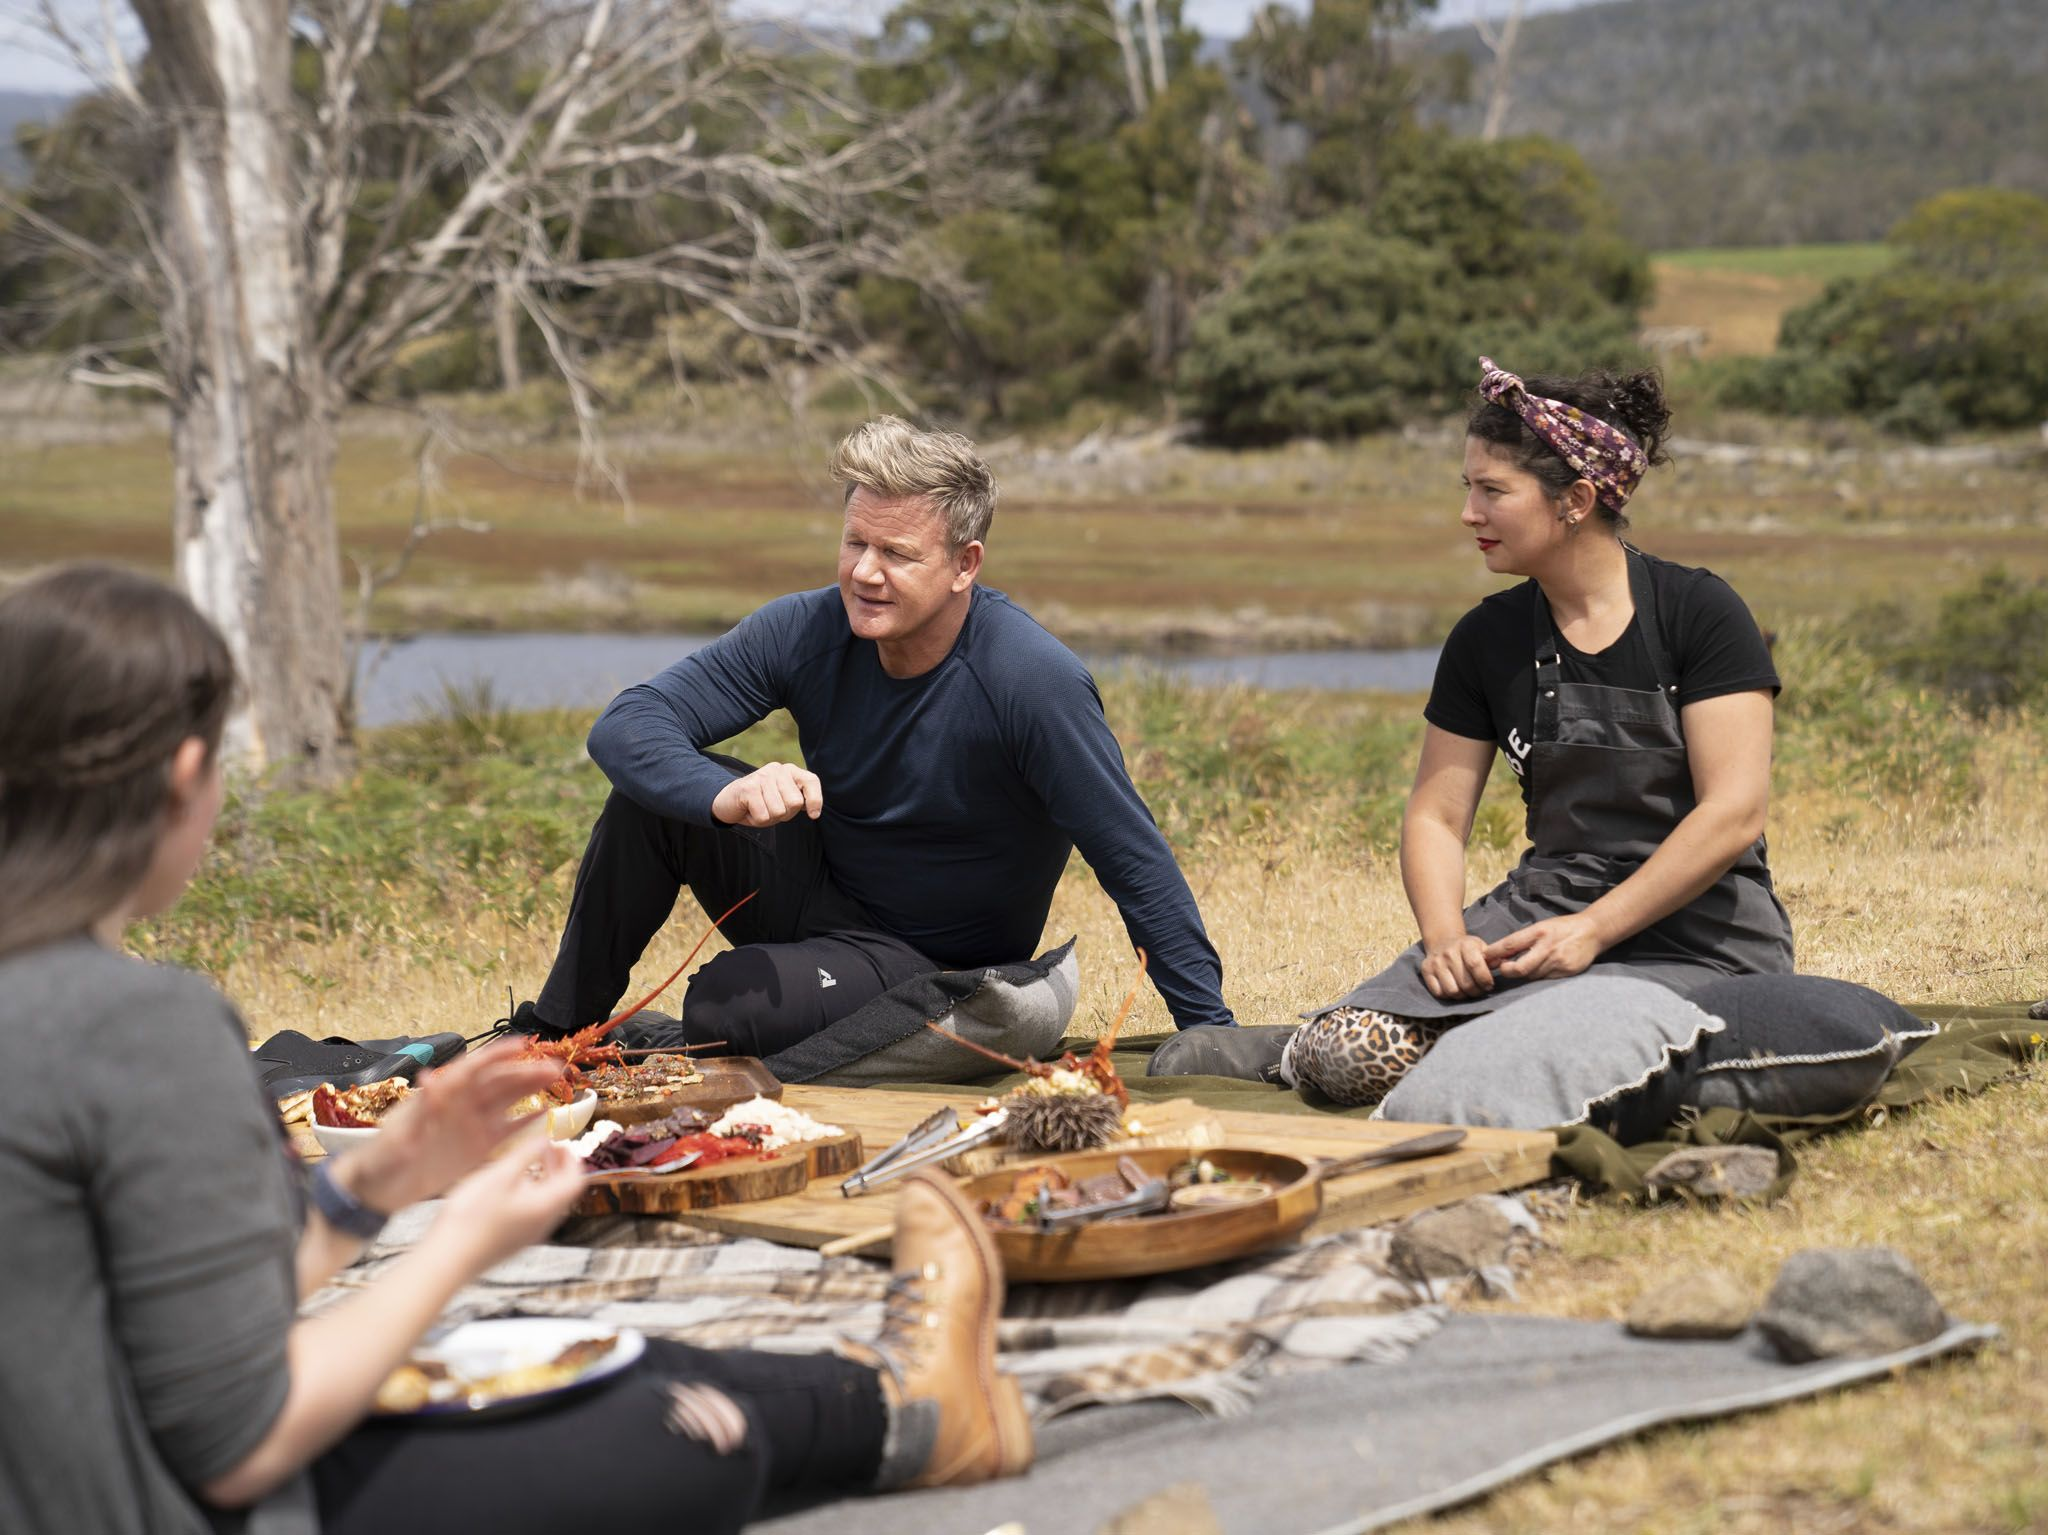 Gordon Ramsay and Chef Analiese Gregory receive feedback on their dishes during the big cook in... [Photo of the day - September 2020]